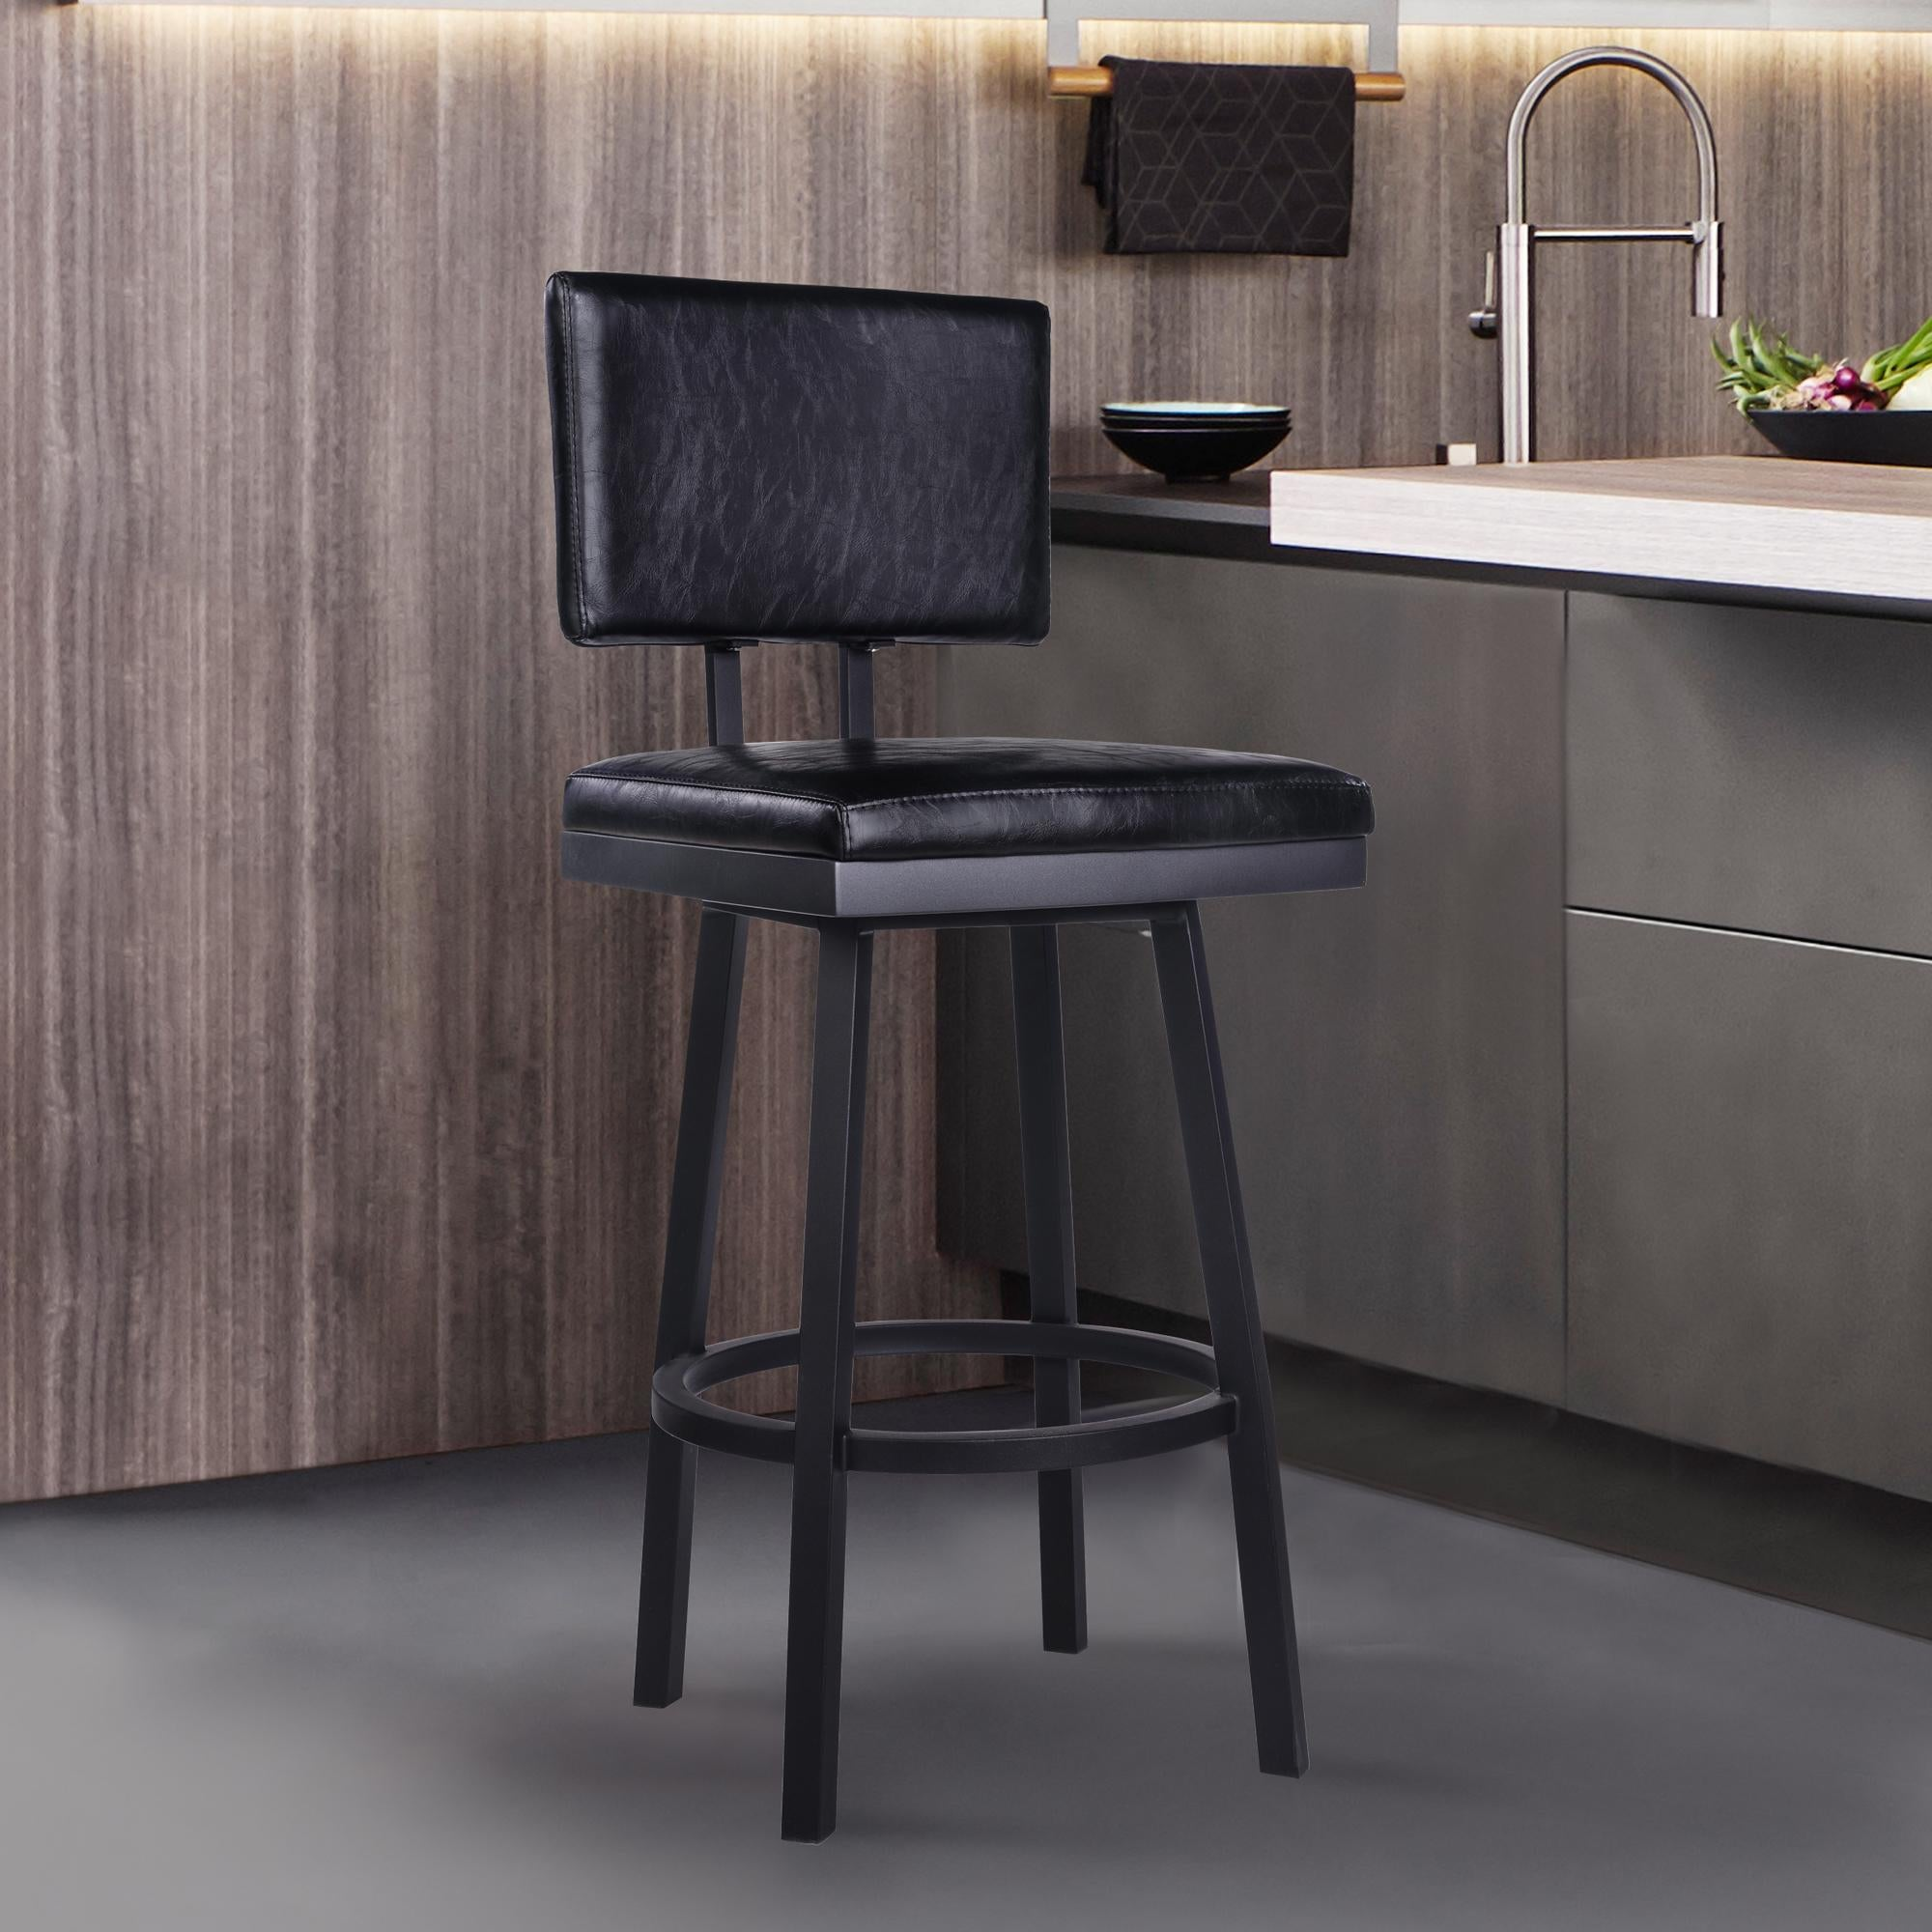 Armen Living Balboa 26 Counter Height Barstool in Black Powder Coated Finish and Vintage Black Faux Leather